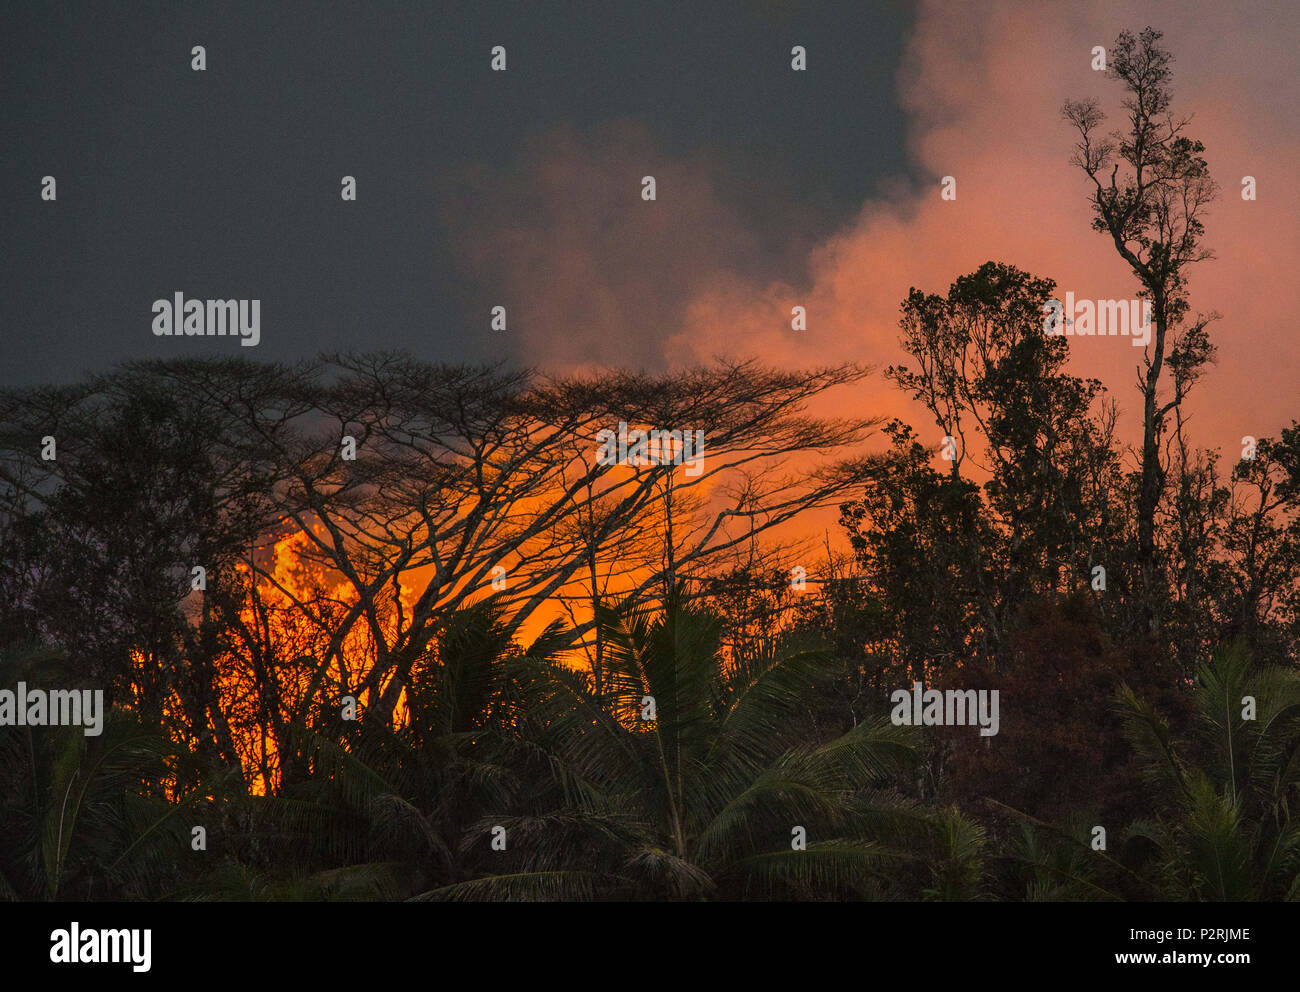 Pahoa, Hawaii, USA. 9th June, 2018. Fissure #8 blasts nearly 250 feet in the air clearing the tree line in Leilani Estates as the Kilauea Volcano lower east rift zone continues its eruption on Wednesday, June 6, 2018, in Pahoa, Hawaii. Credit: L.E. Baskow/ZUMA Wire/Alamy Live News - Stock Image